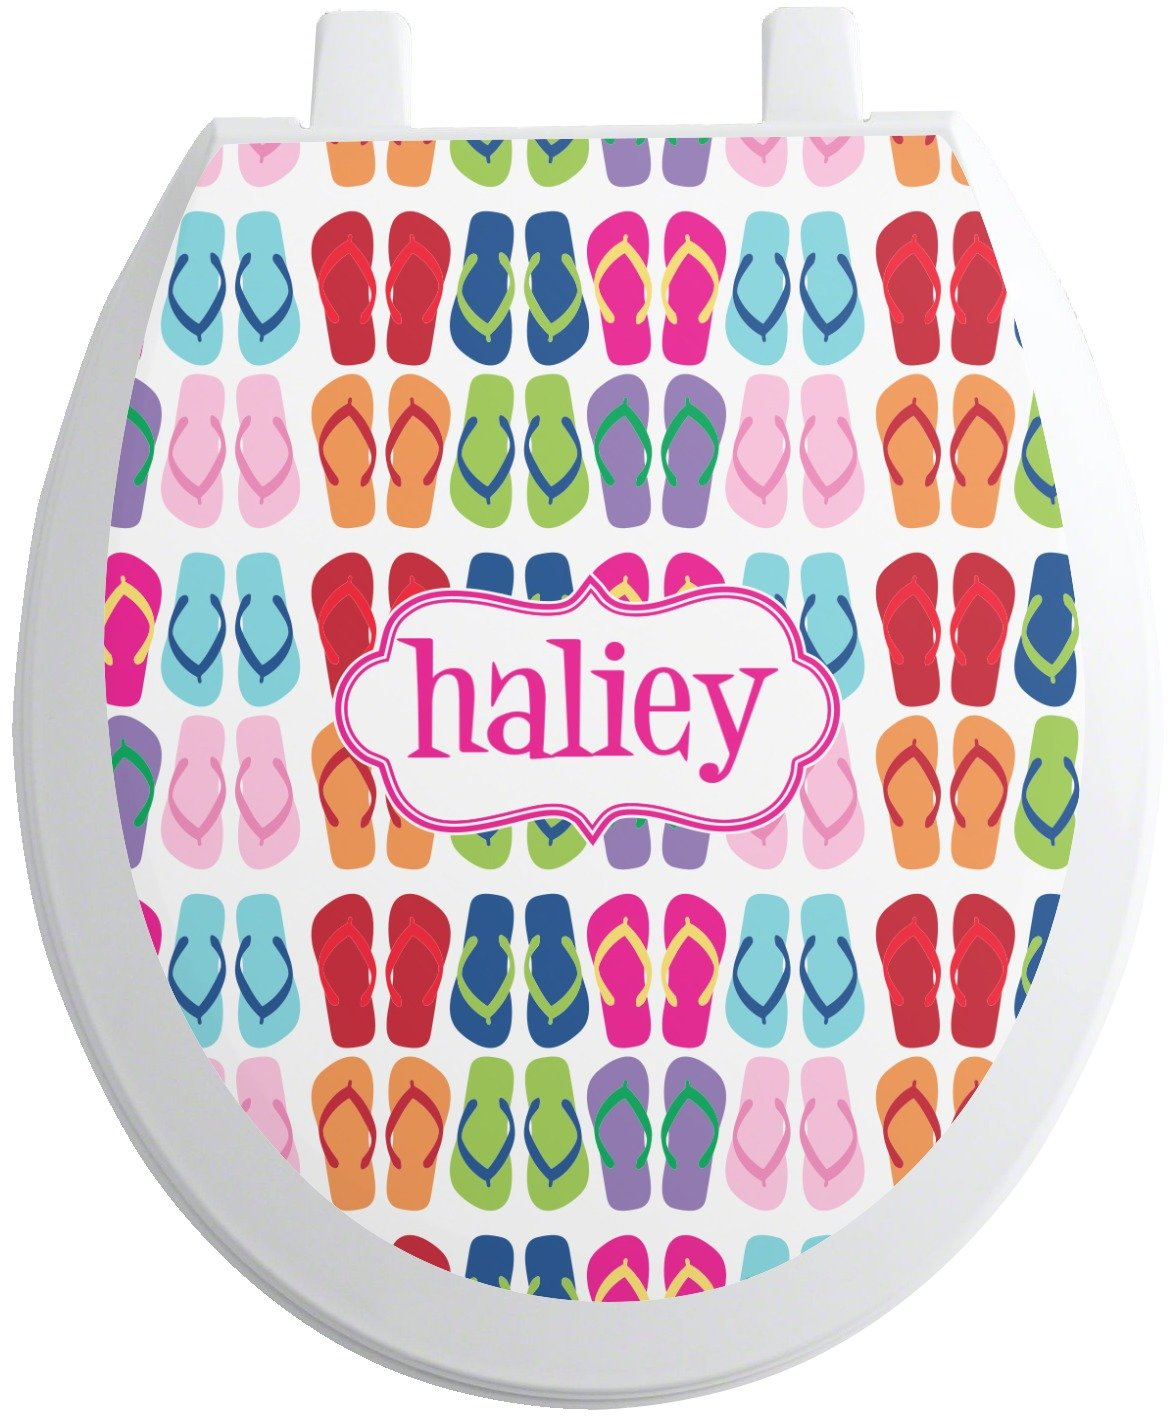 cheap FlipFlop Toilet Seat Decal - Round (Personalized)